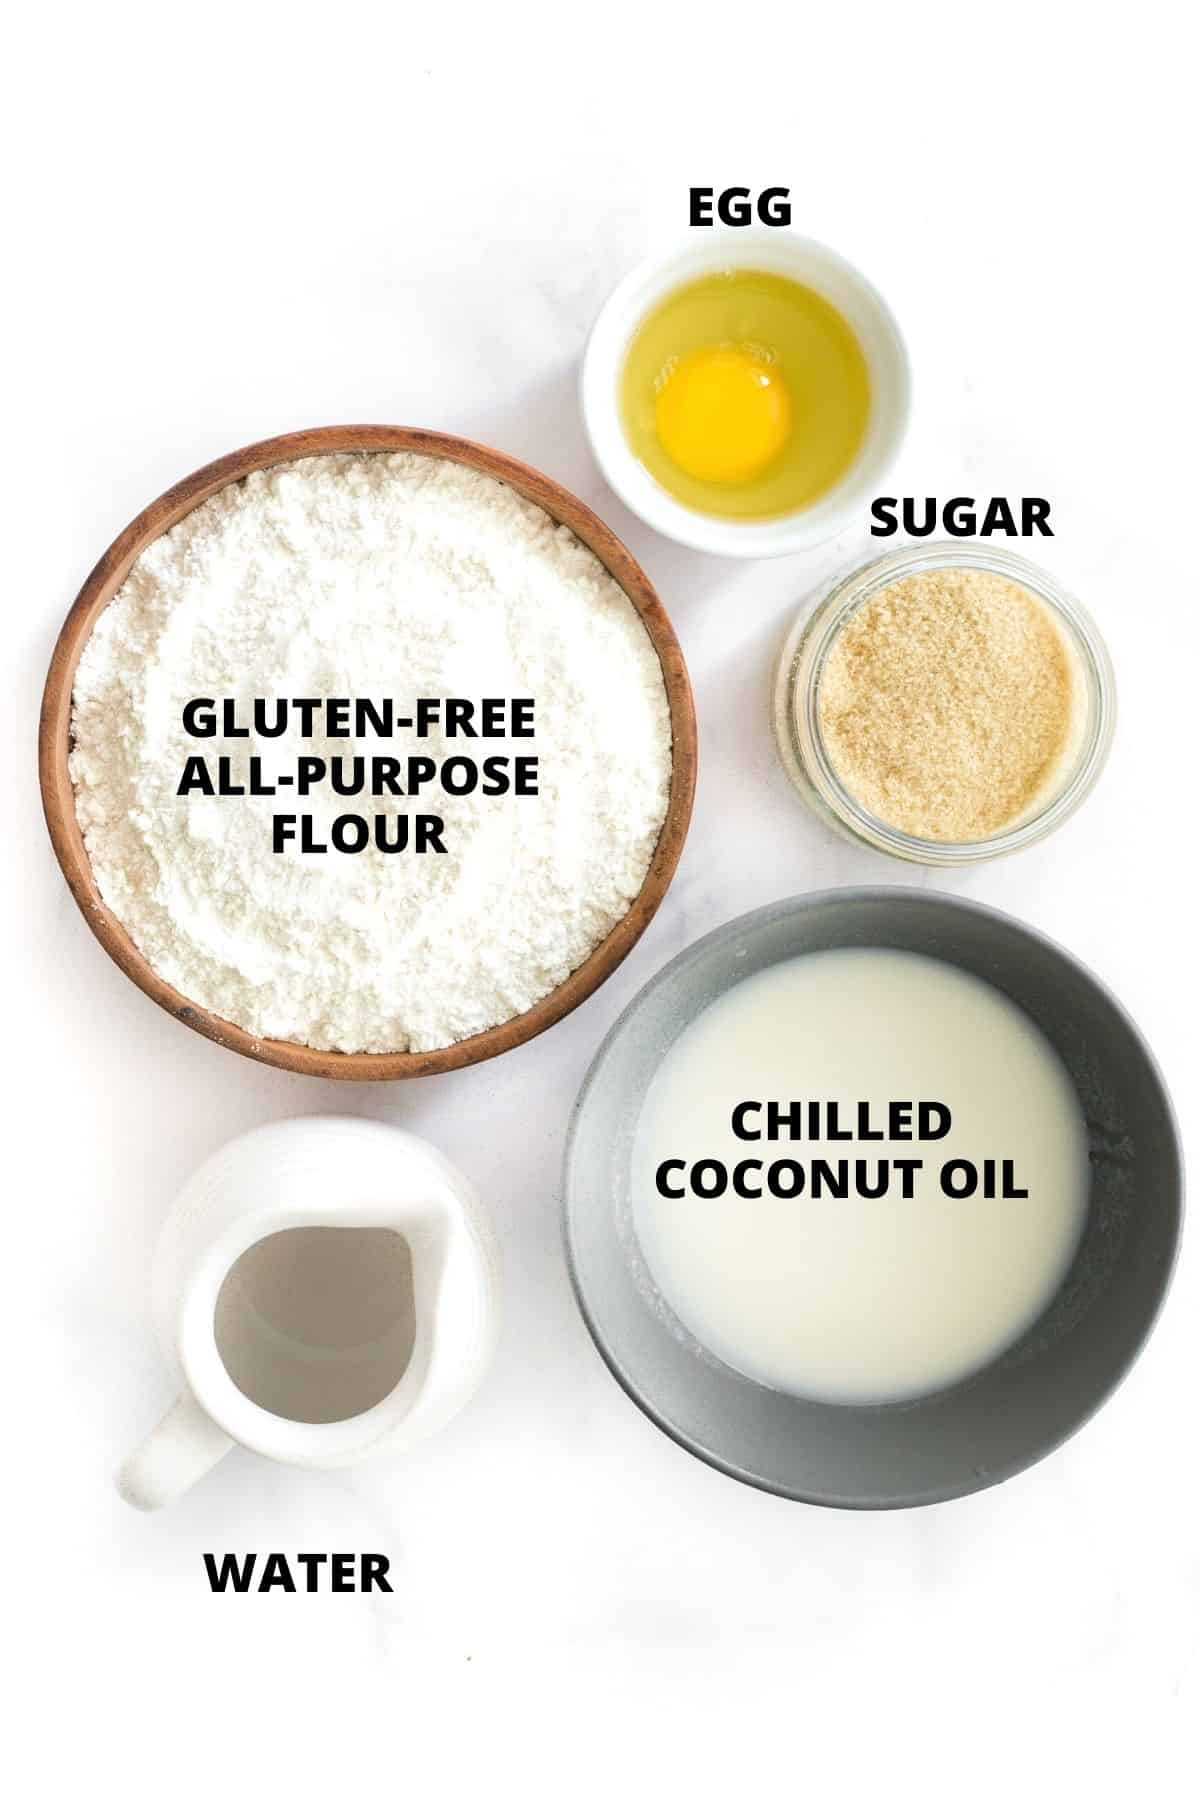 Labeled ingredients for gluten-free pie crust laid out on marble board.